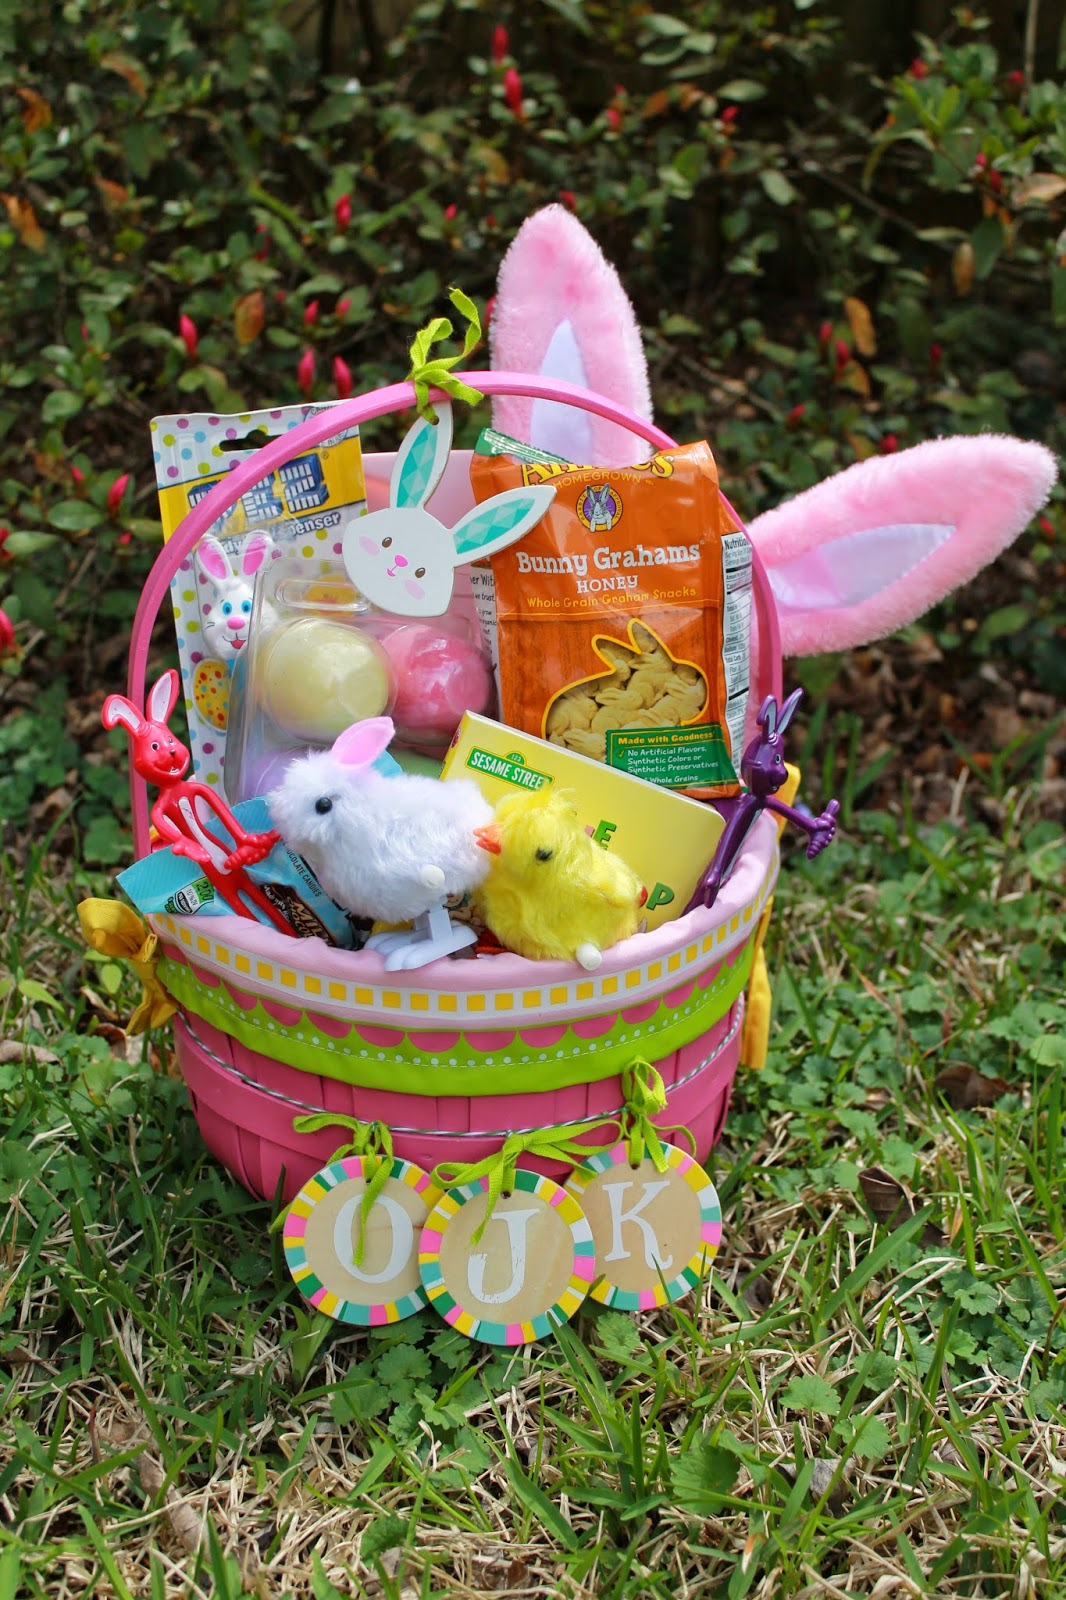 Polka dotty place easter toddler edition monday march 7 2016 negle Gallery